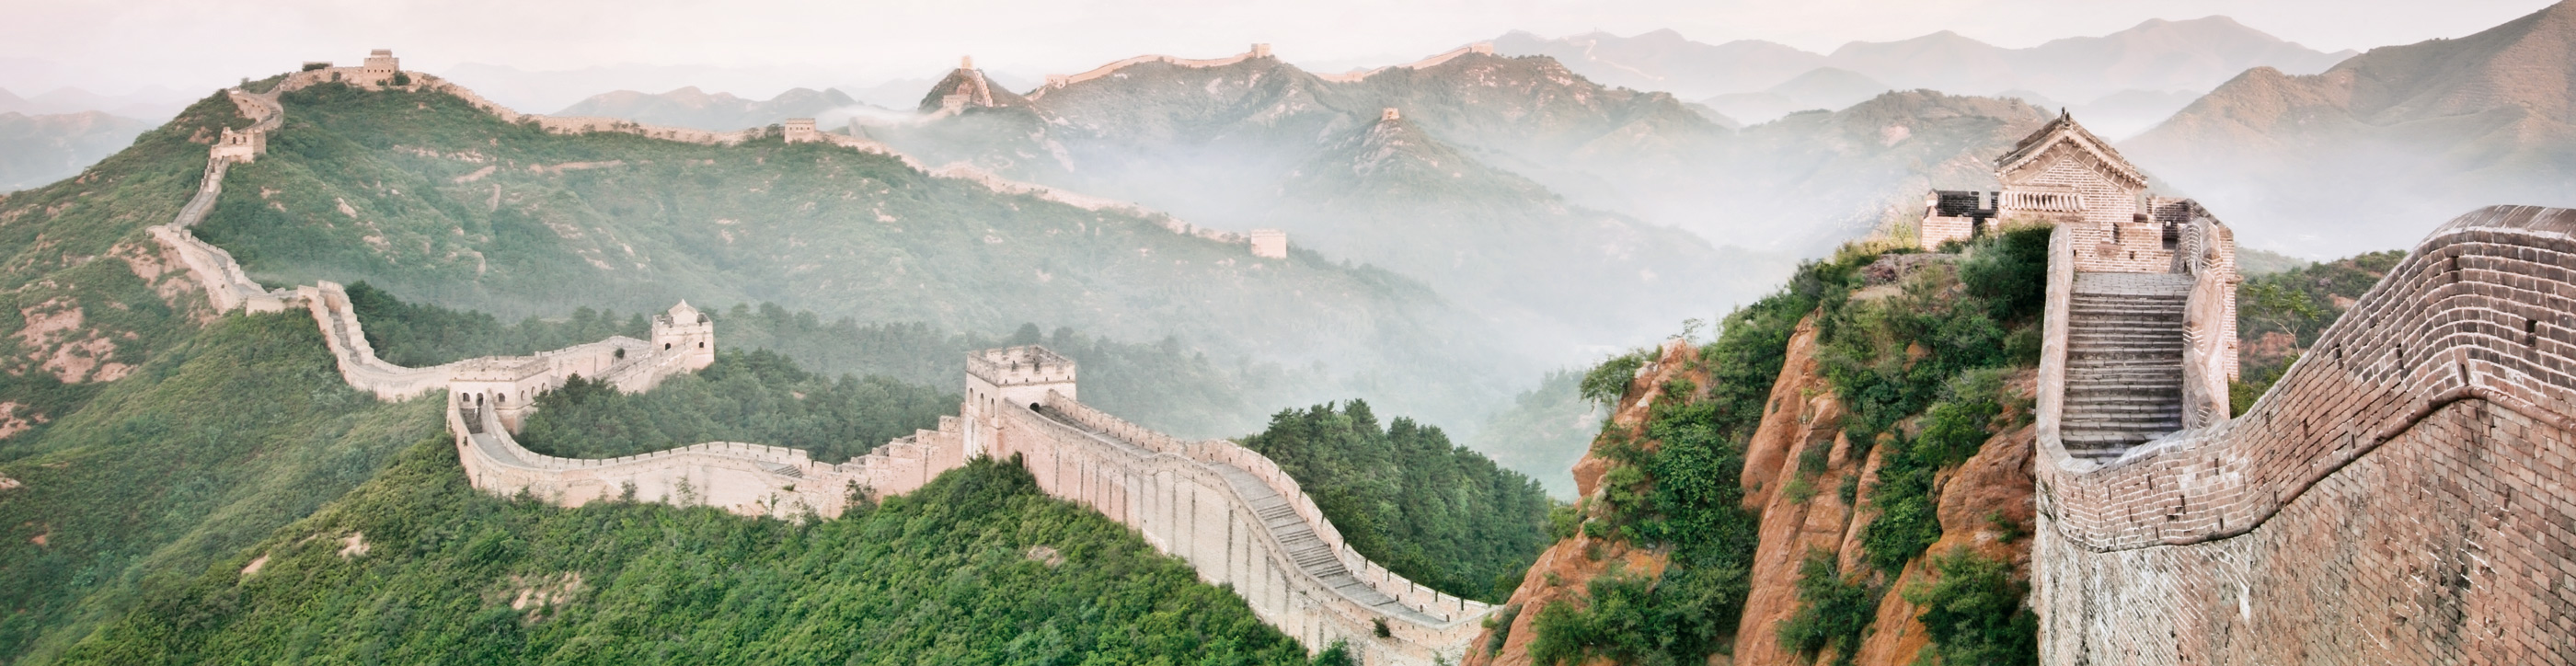 short essay great wall china The great wall of china the great wall of china is truly one of the greatest architectural achievements in recorded history the longest structure ever.